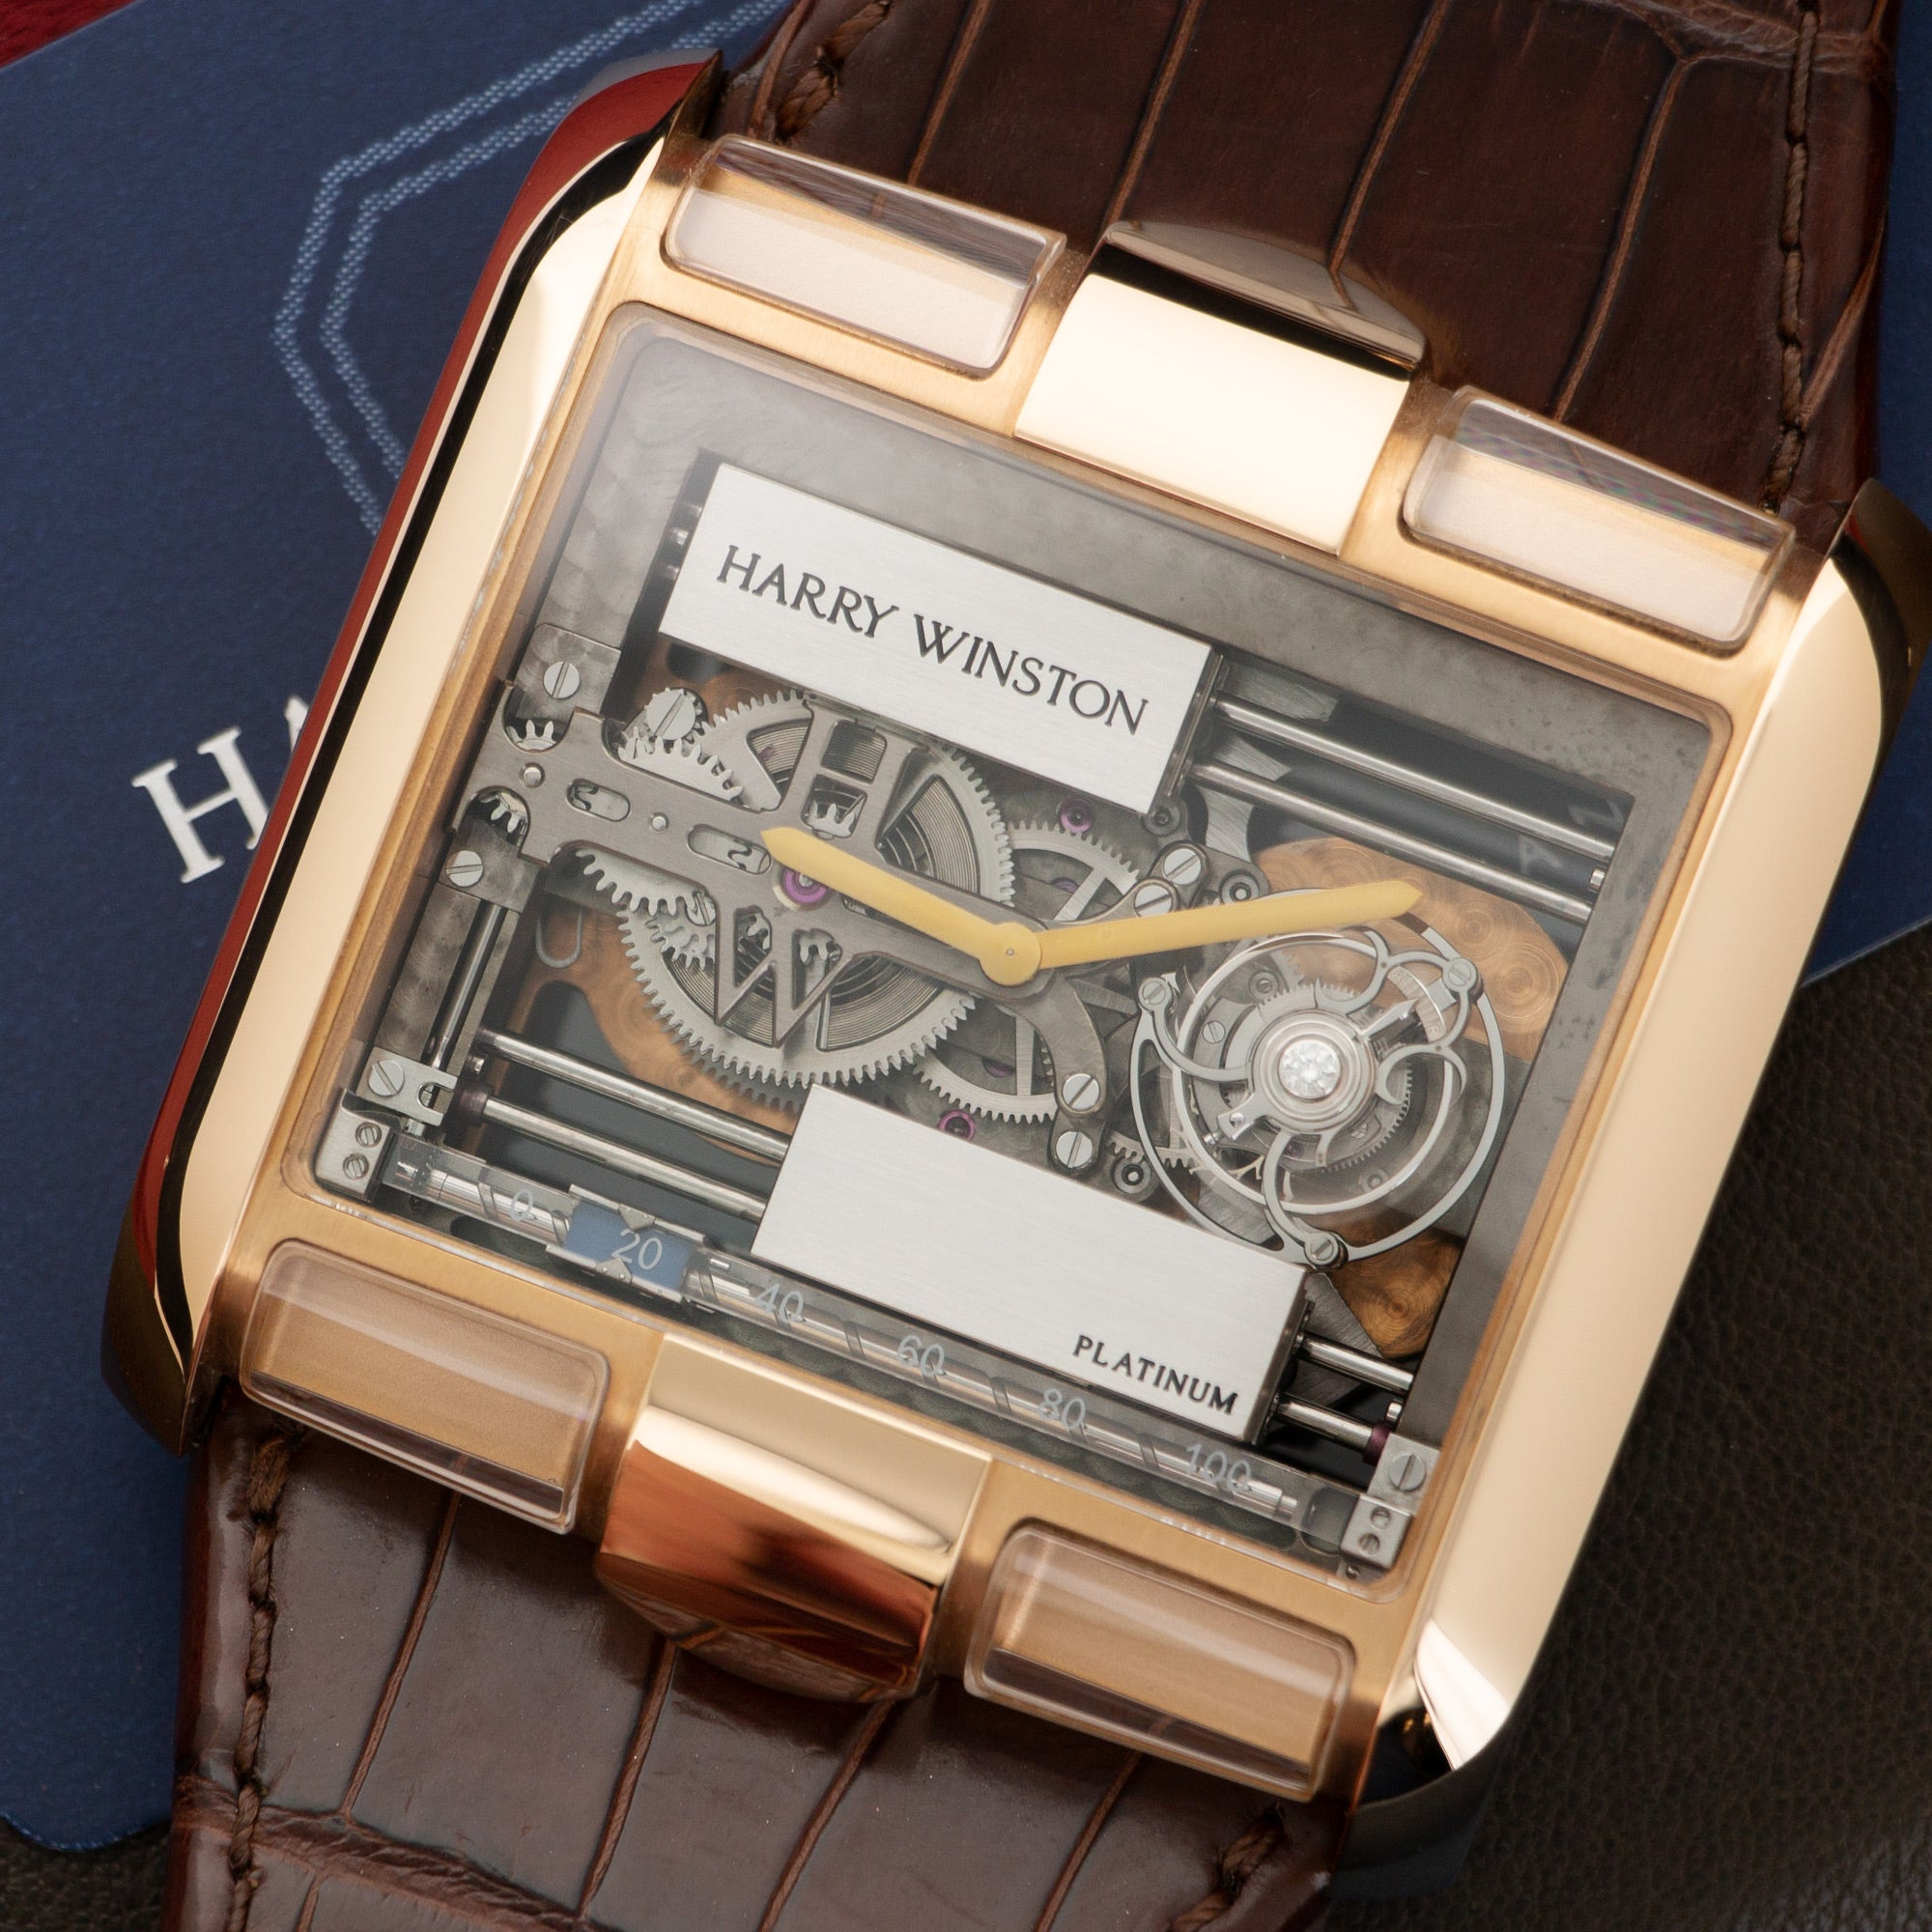 Harry Winston High Complications 350/MATRL 18k RG  Mint Gents 18k RG Skeletonized 49mm Manual Recent Brown Crocodile Original Box and Certificate